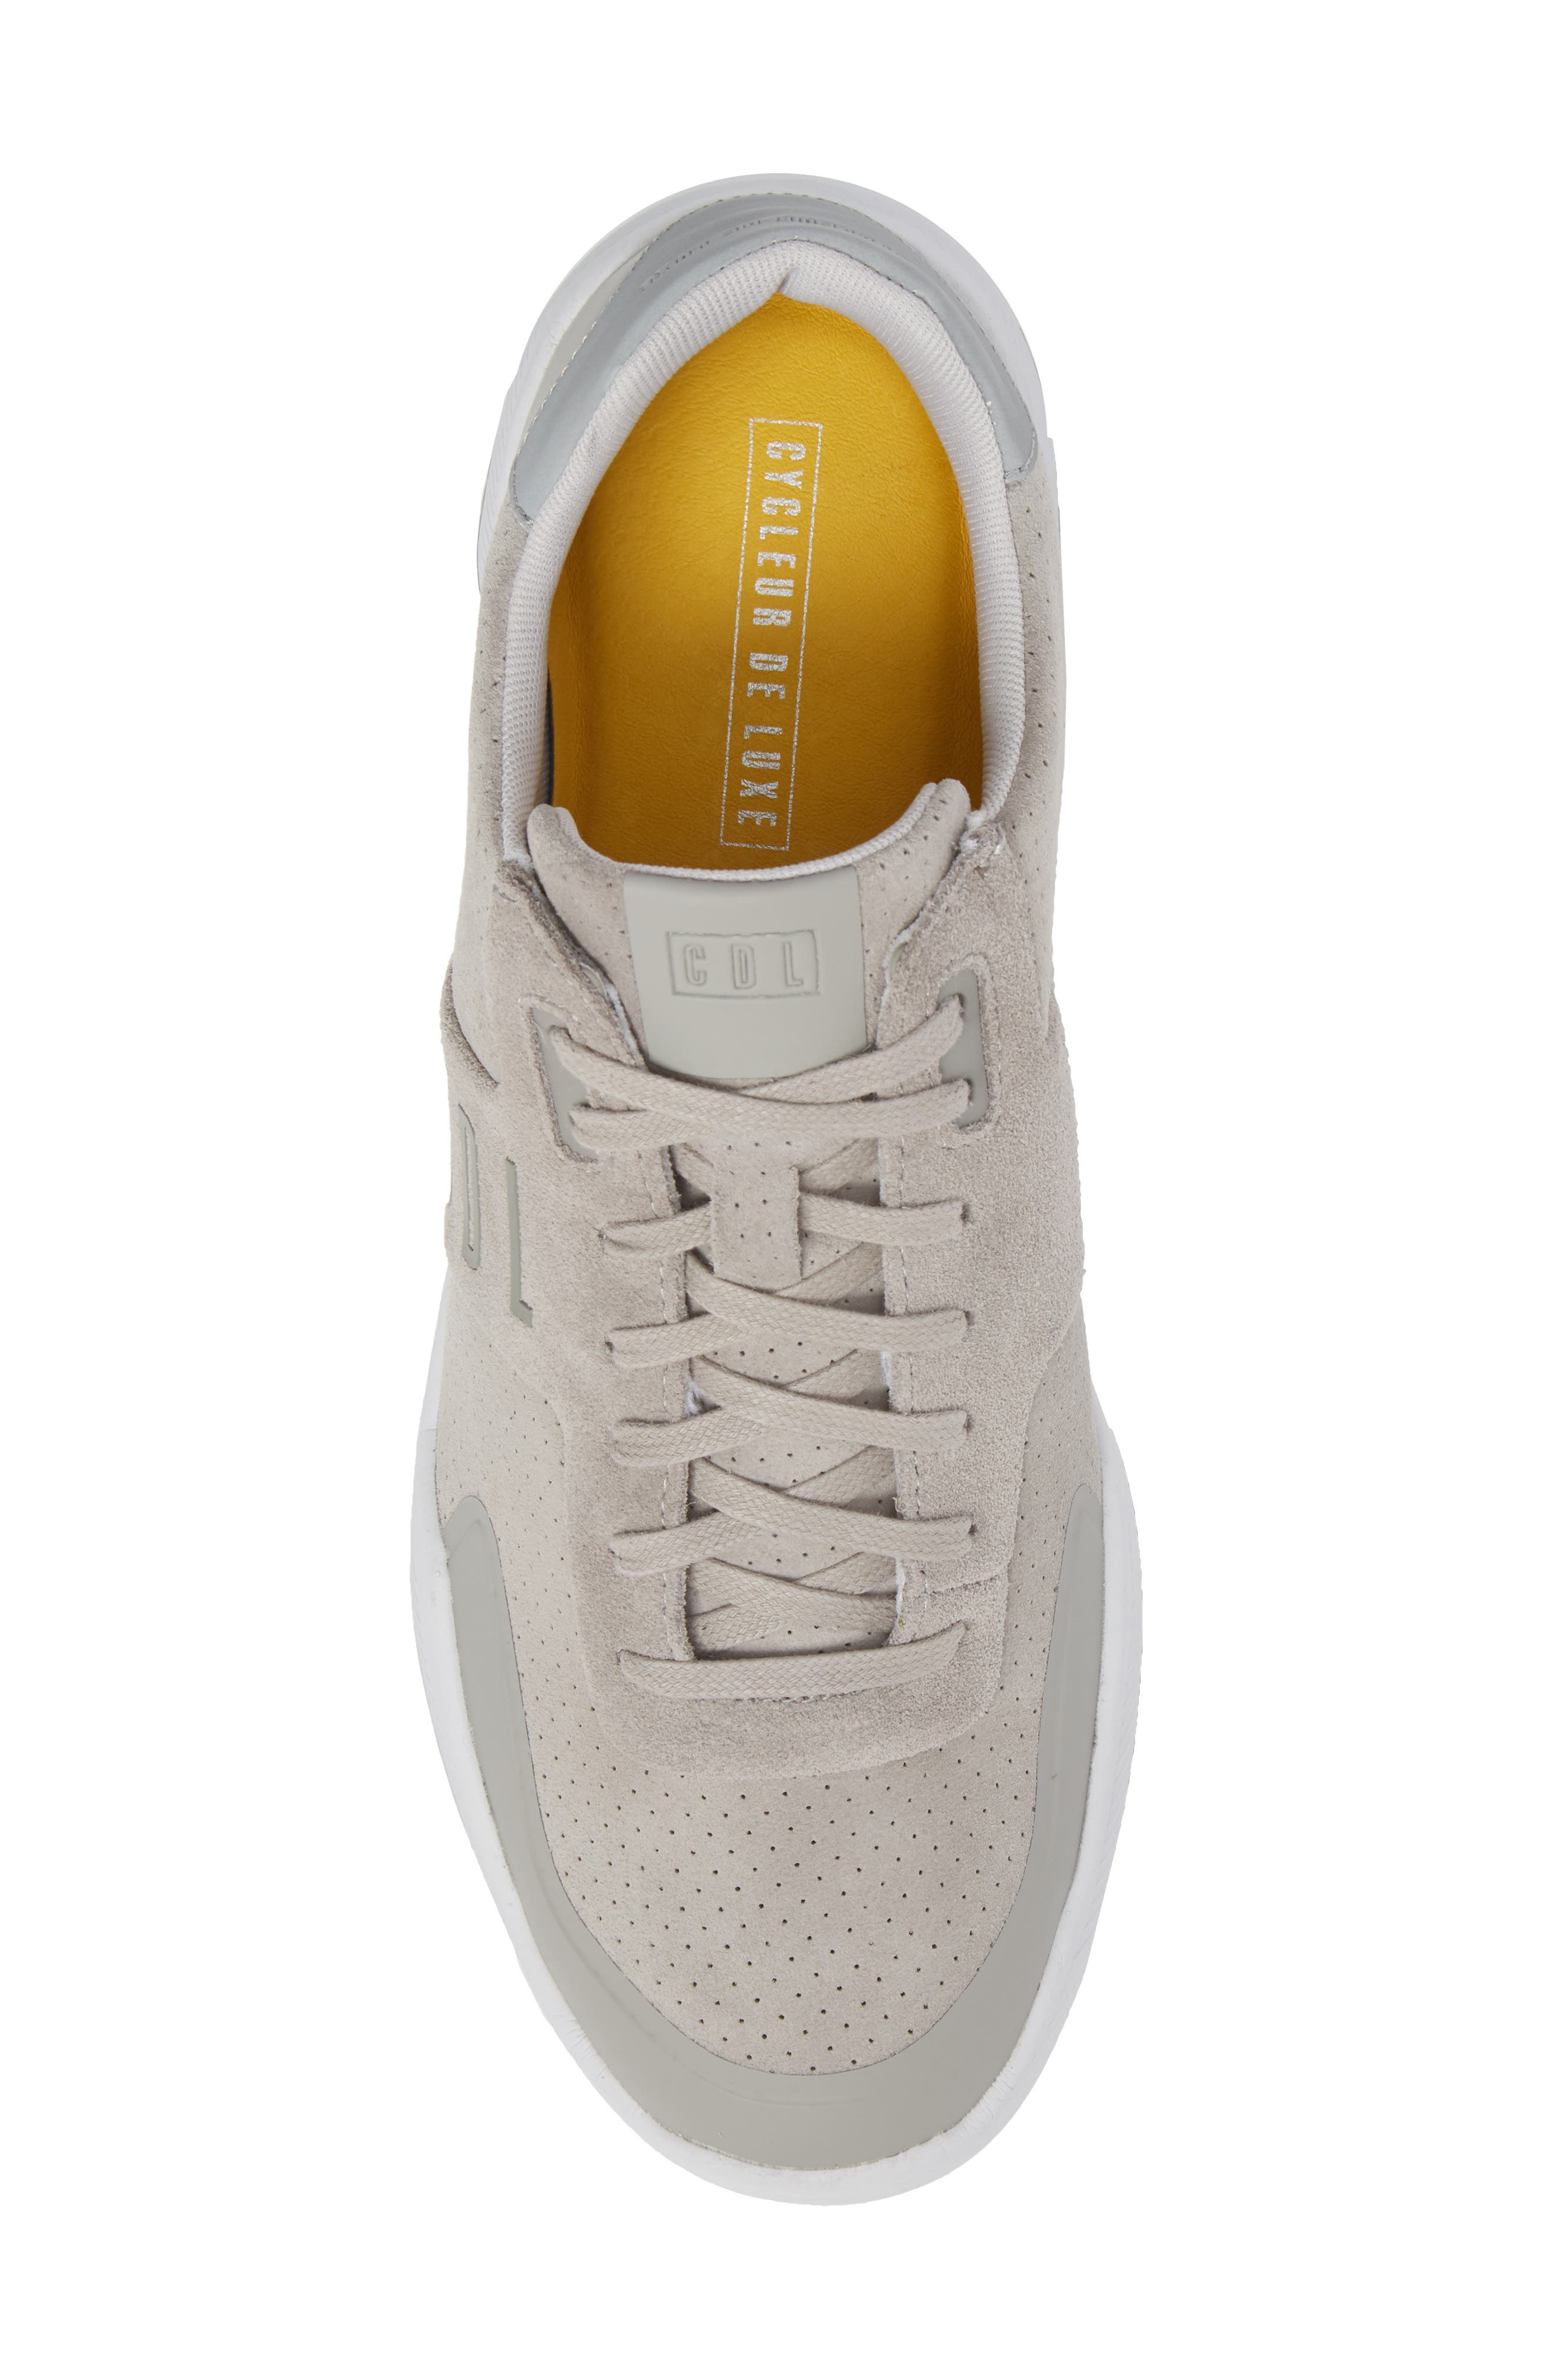 Shima Low Top Sneaker,                             Alternate thumbnail 5, color,                             Grey Suede